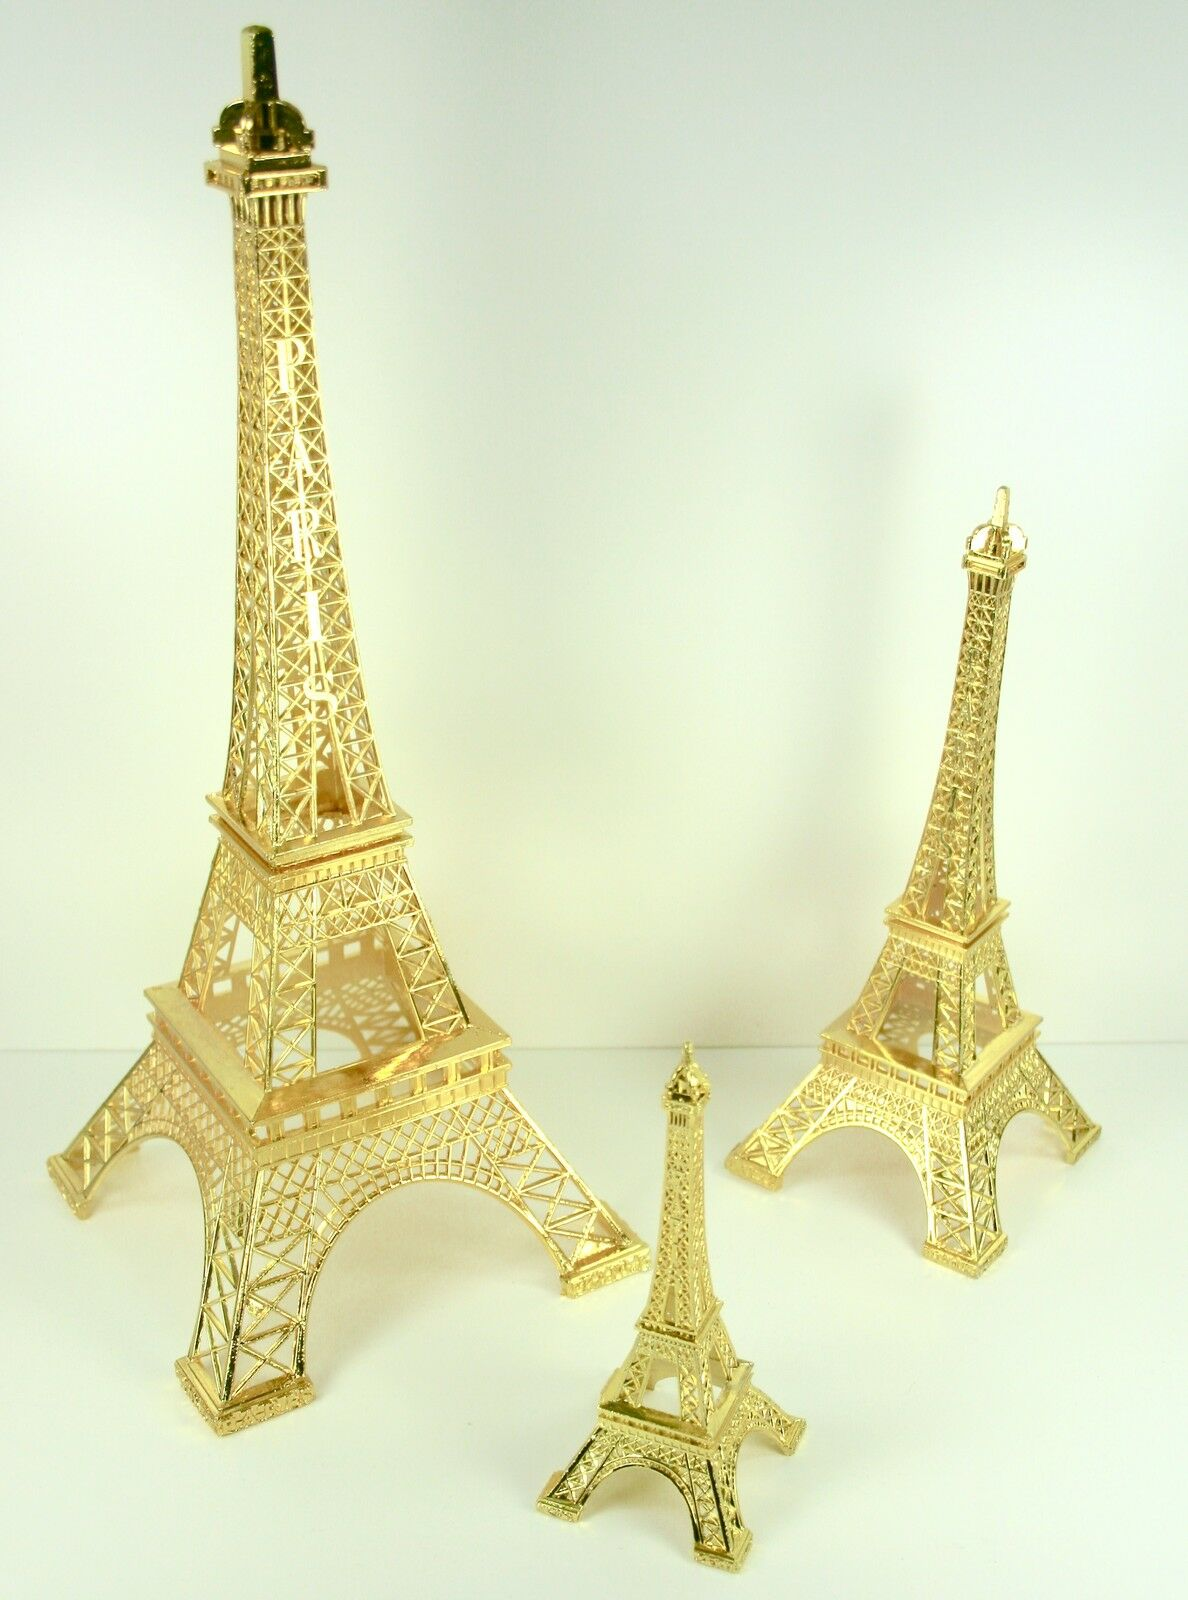 GOLD EIFFEL Tower Paris France Metal Stand Model For Table Decor ...